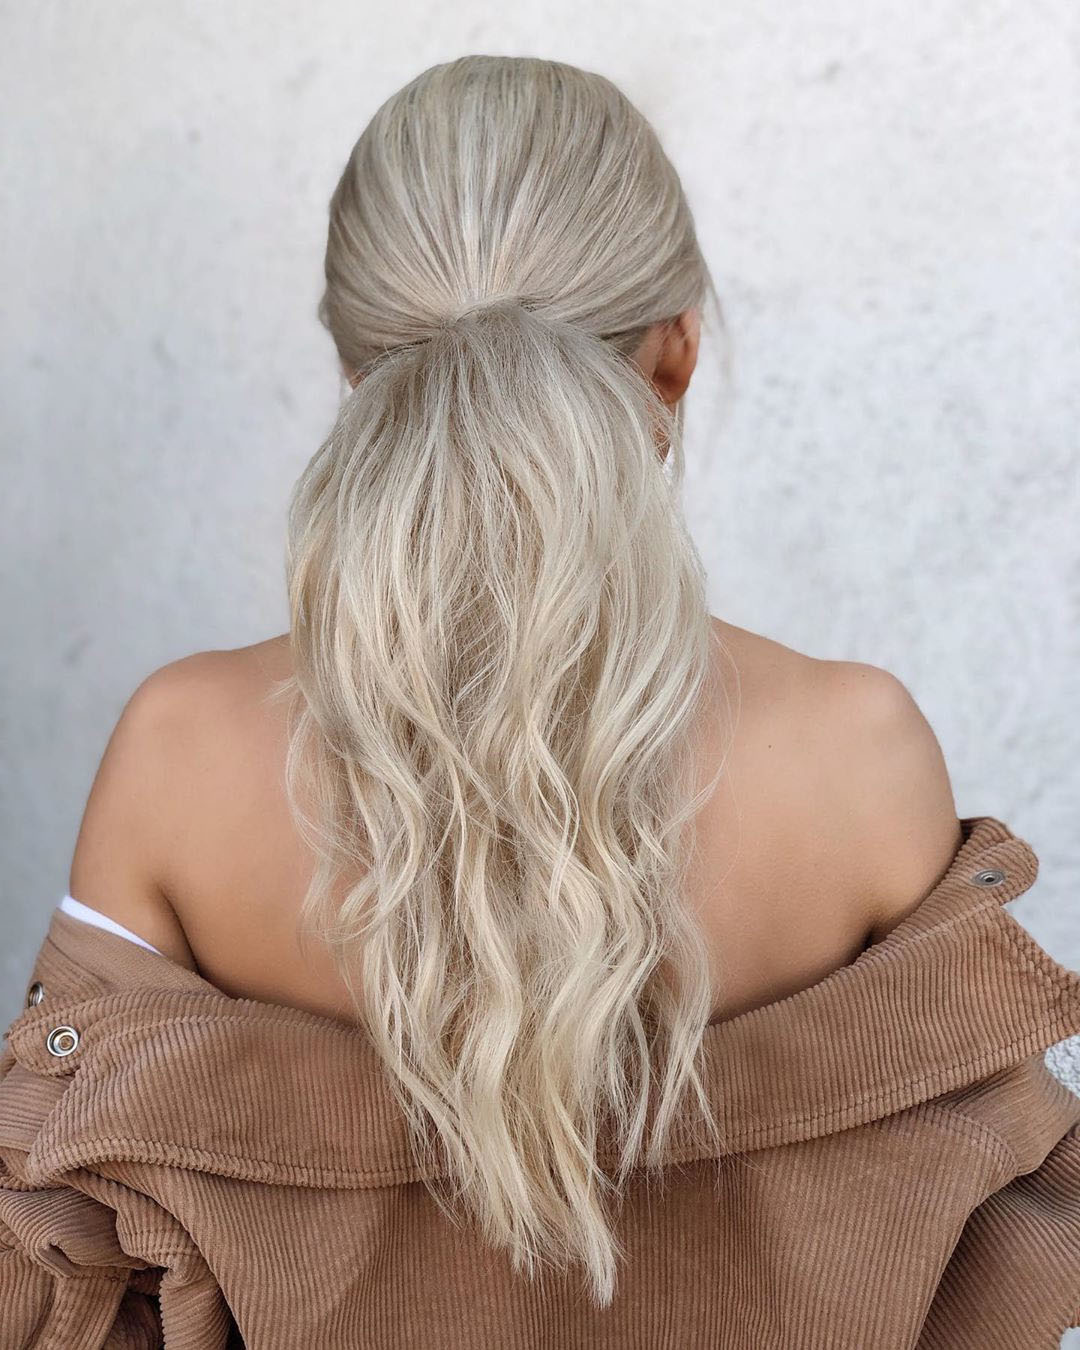 Natural Wavy Hairstyle with a Nice Ponytail